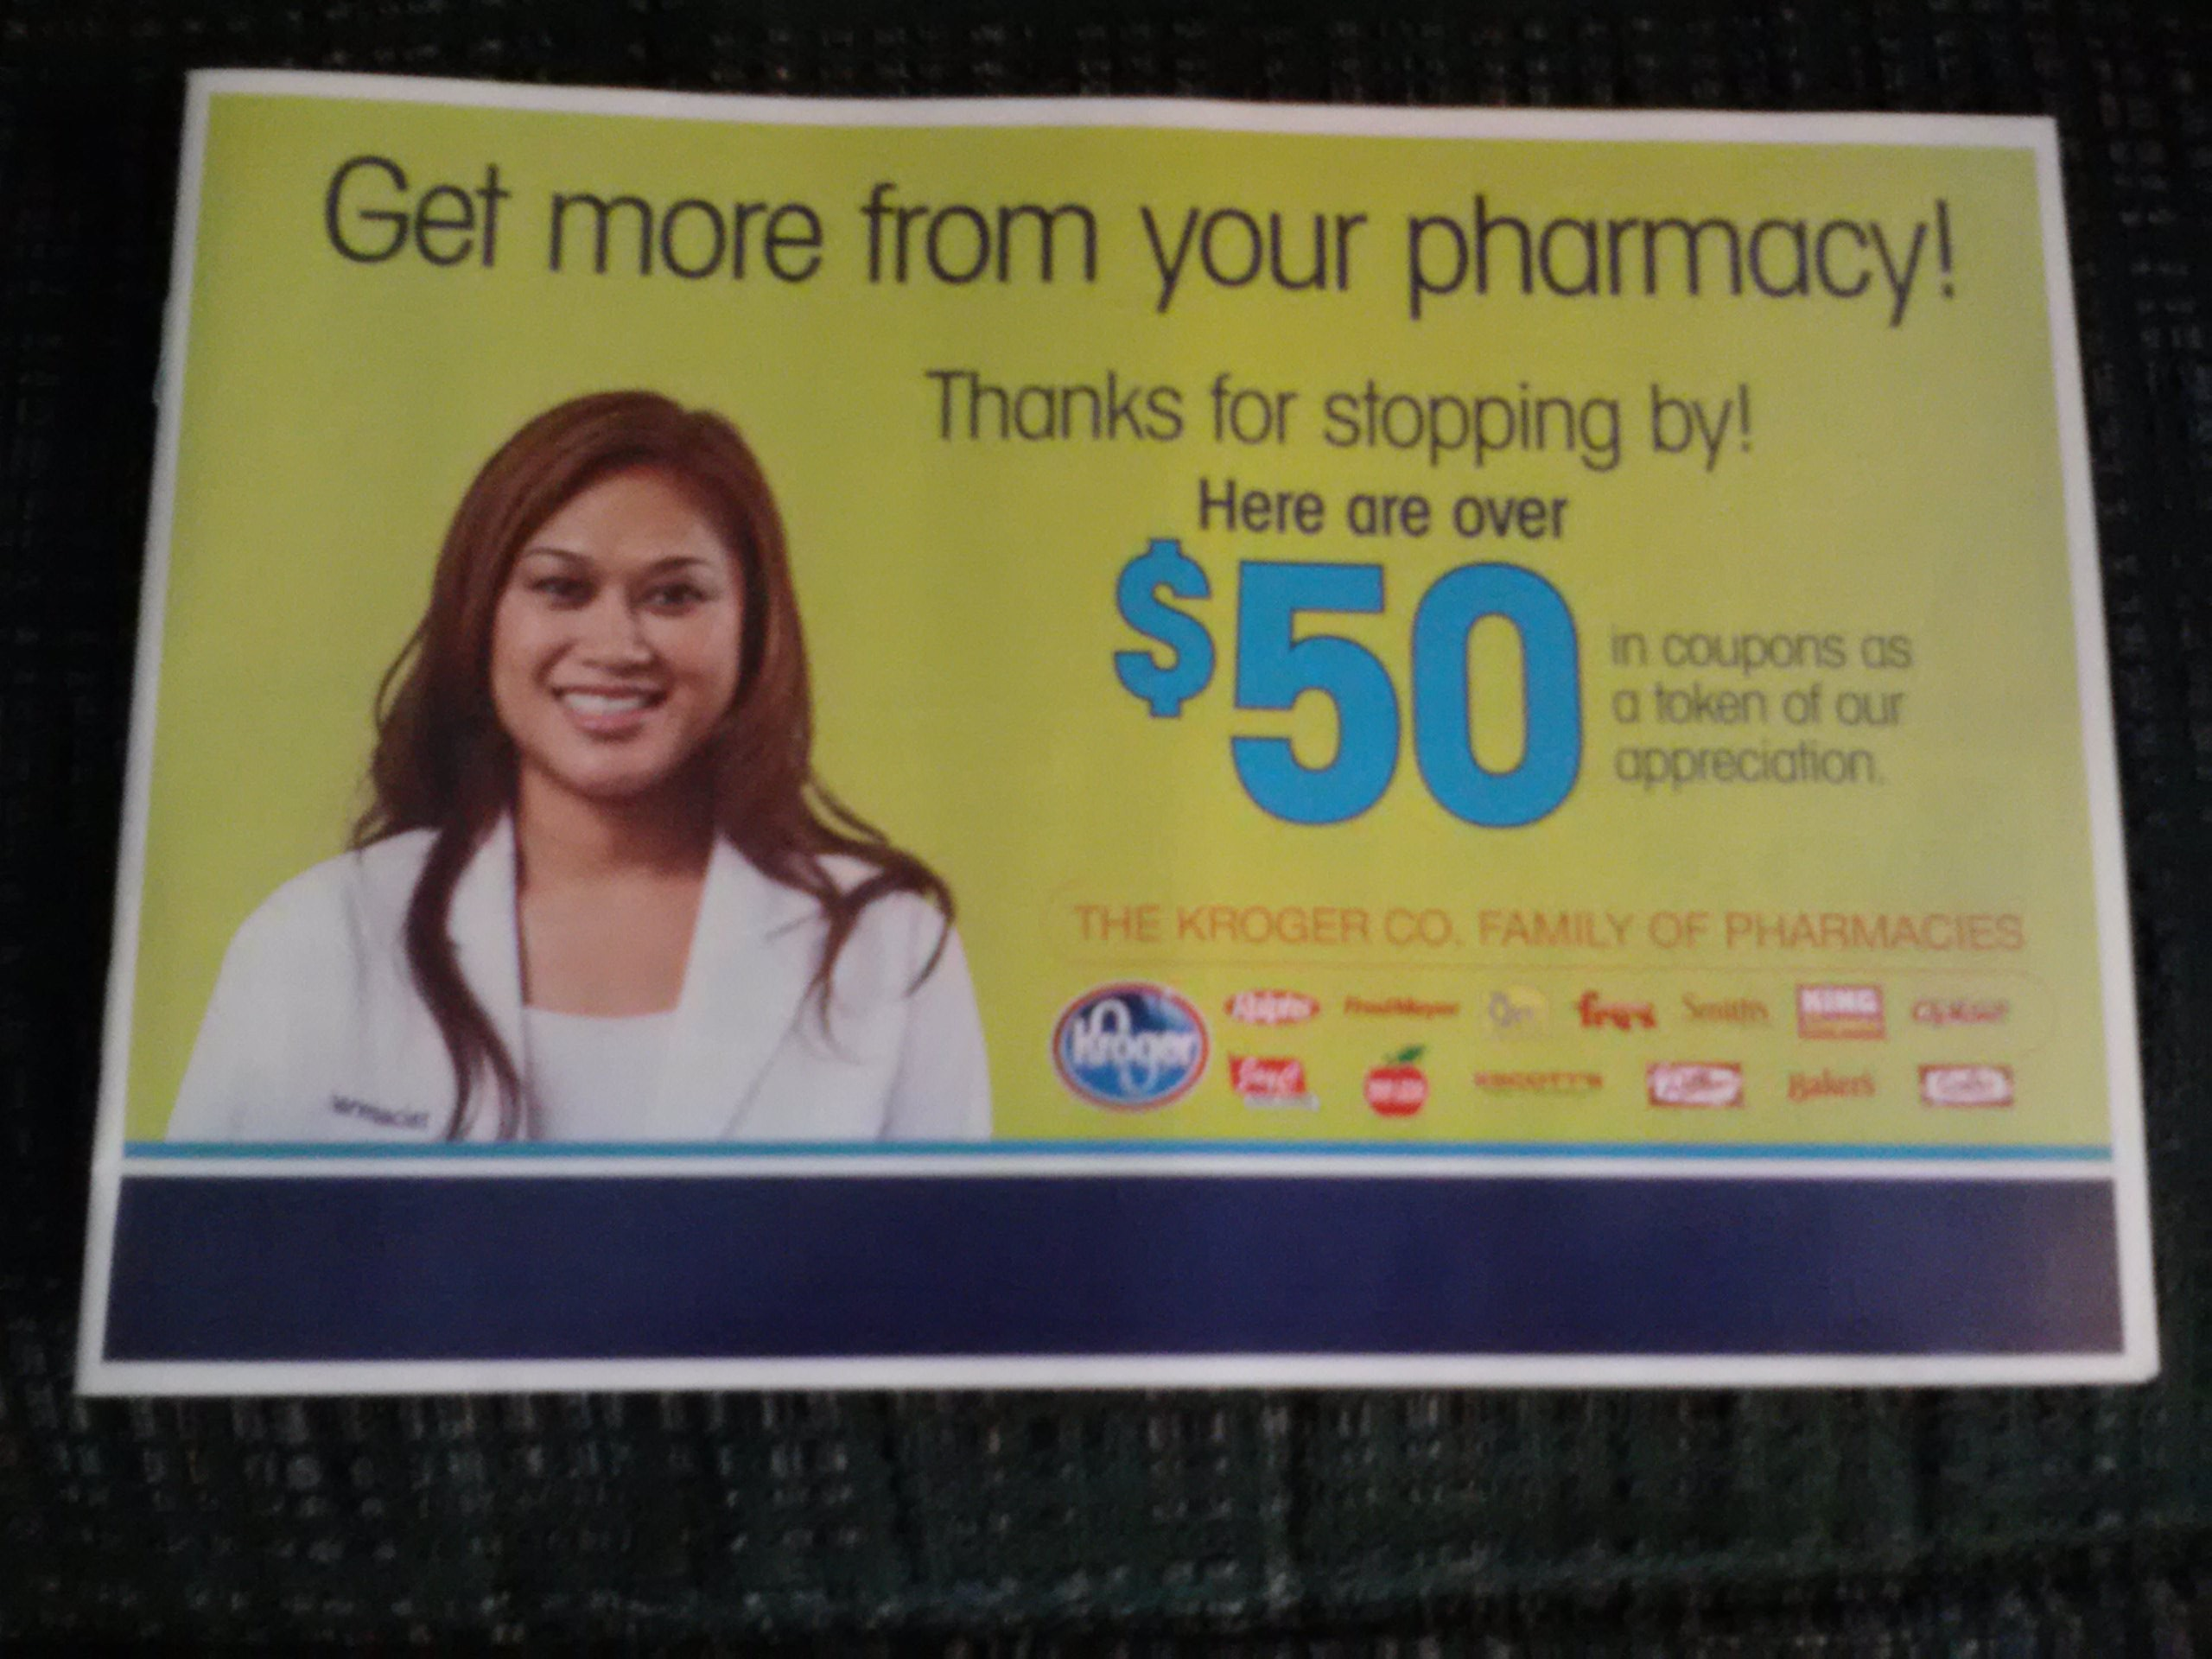 King Soopers Pharmacy Coupon Book: Over $50 in Savings!